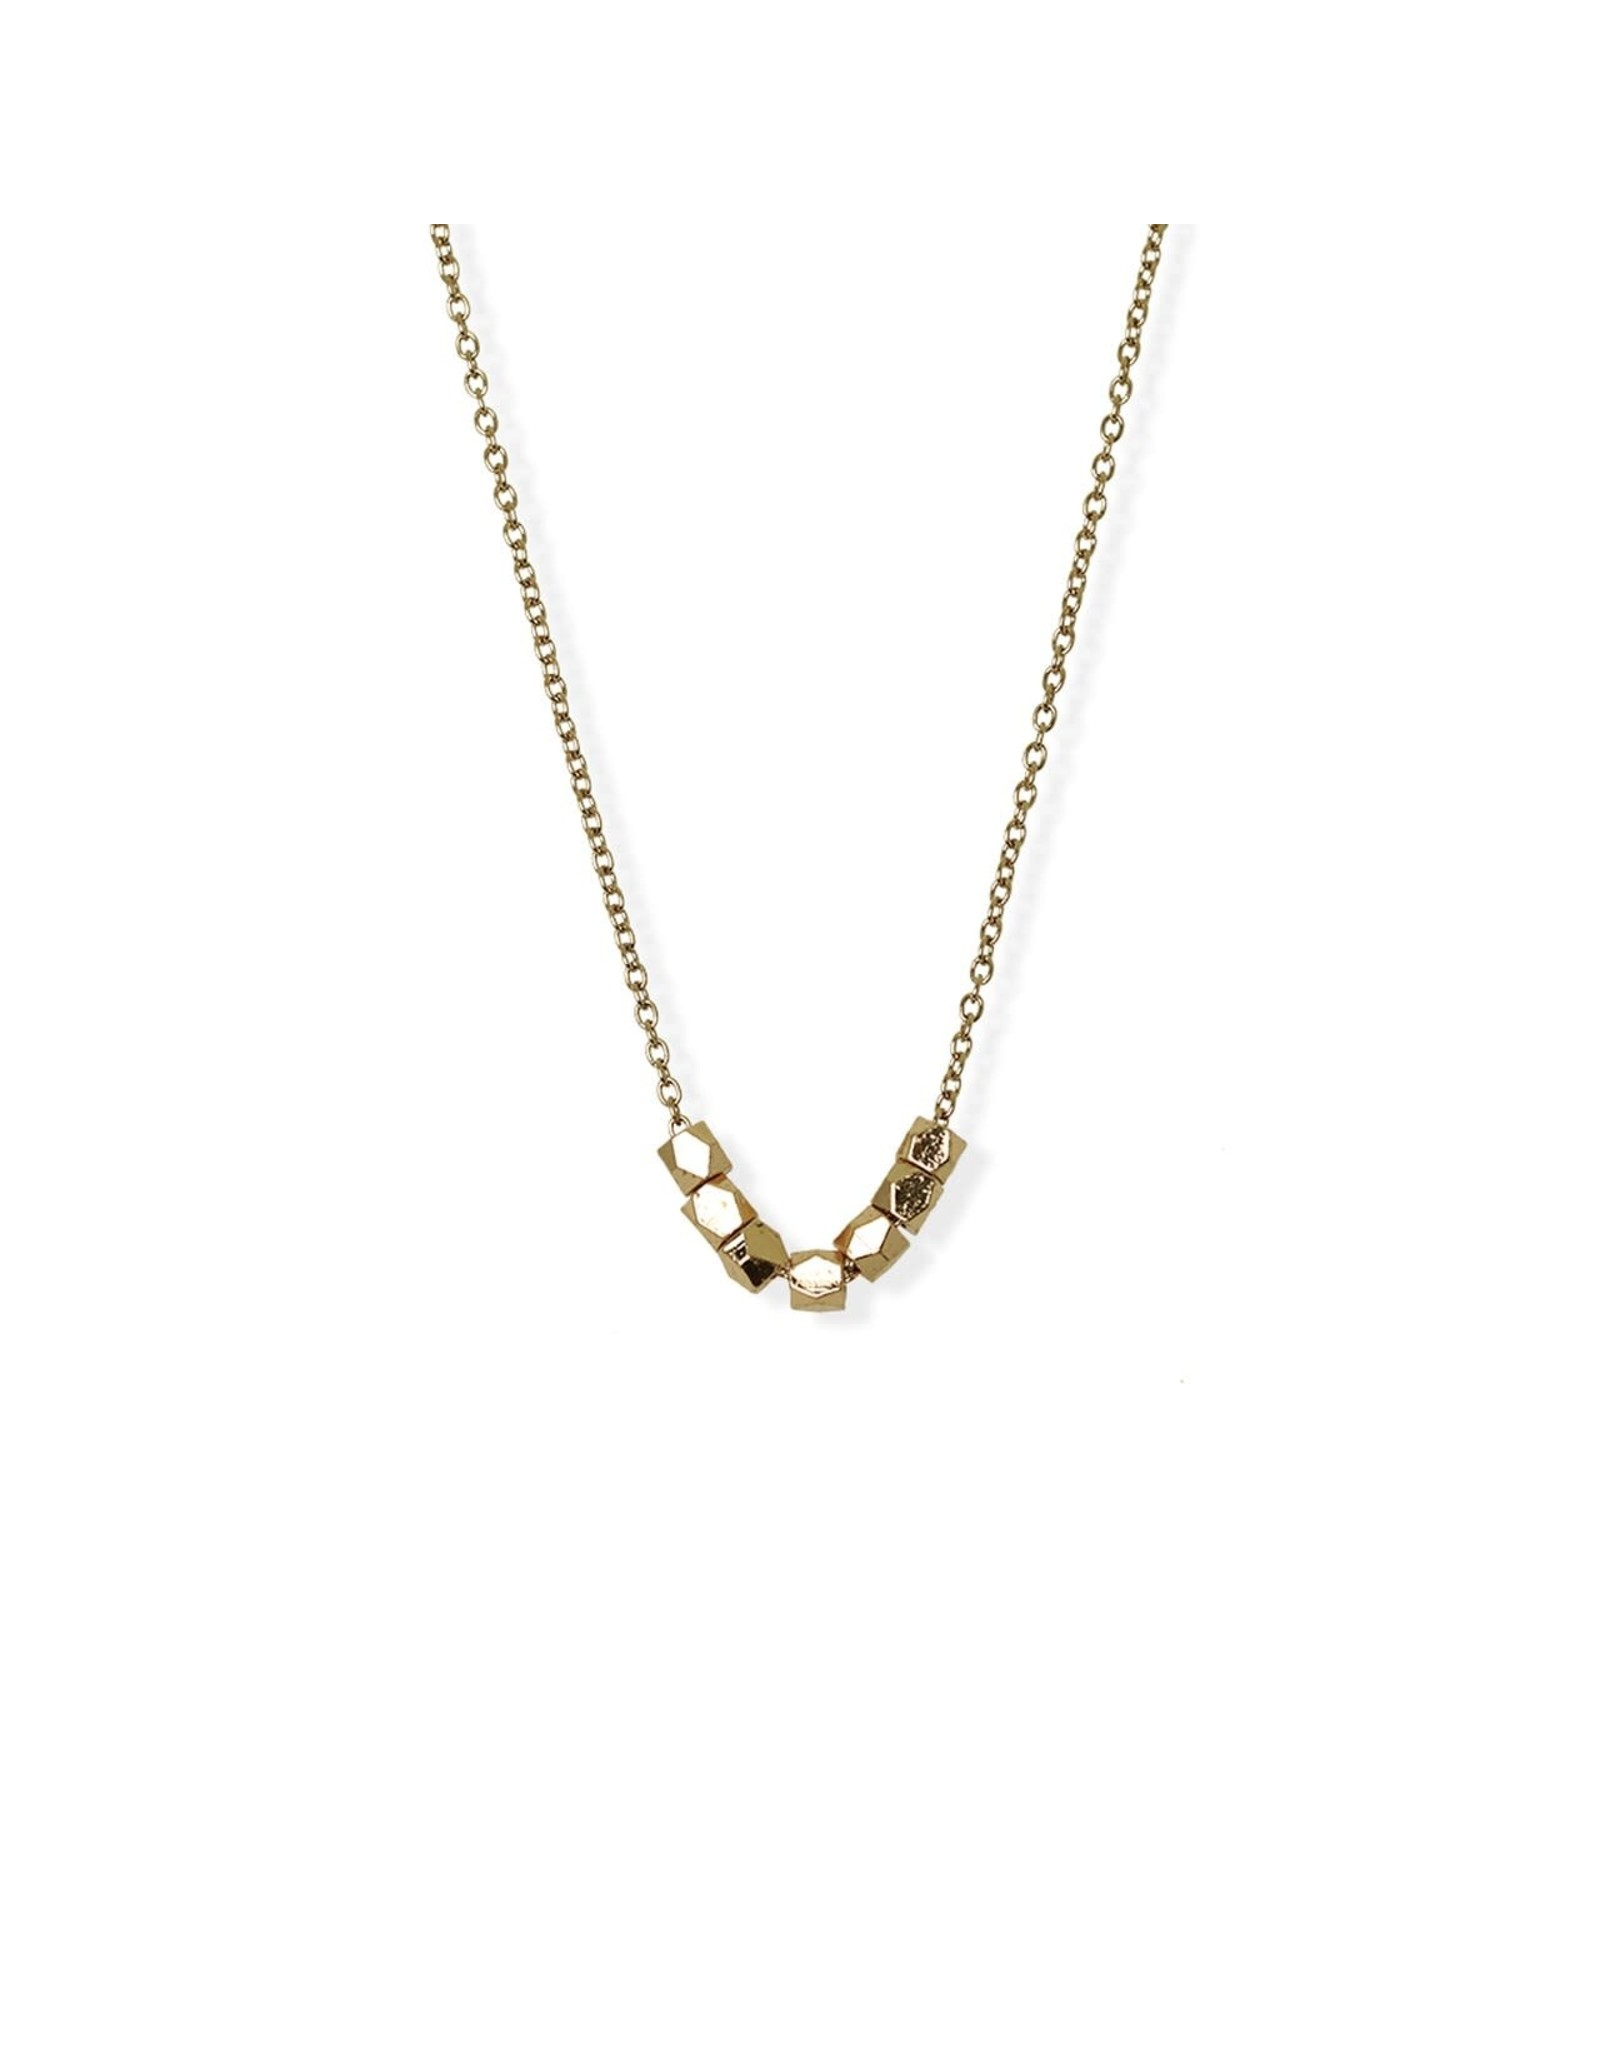 jj + rr  Faceted Bead Necklace Gold